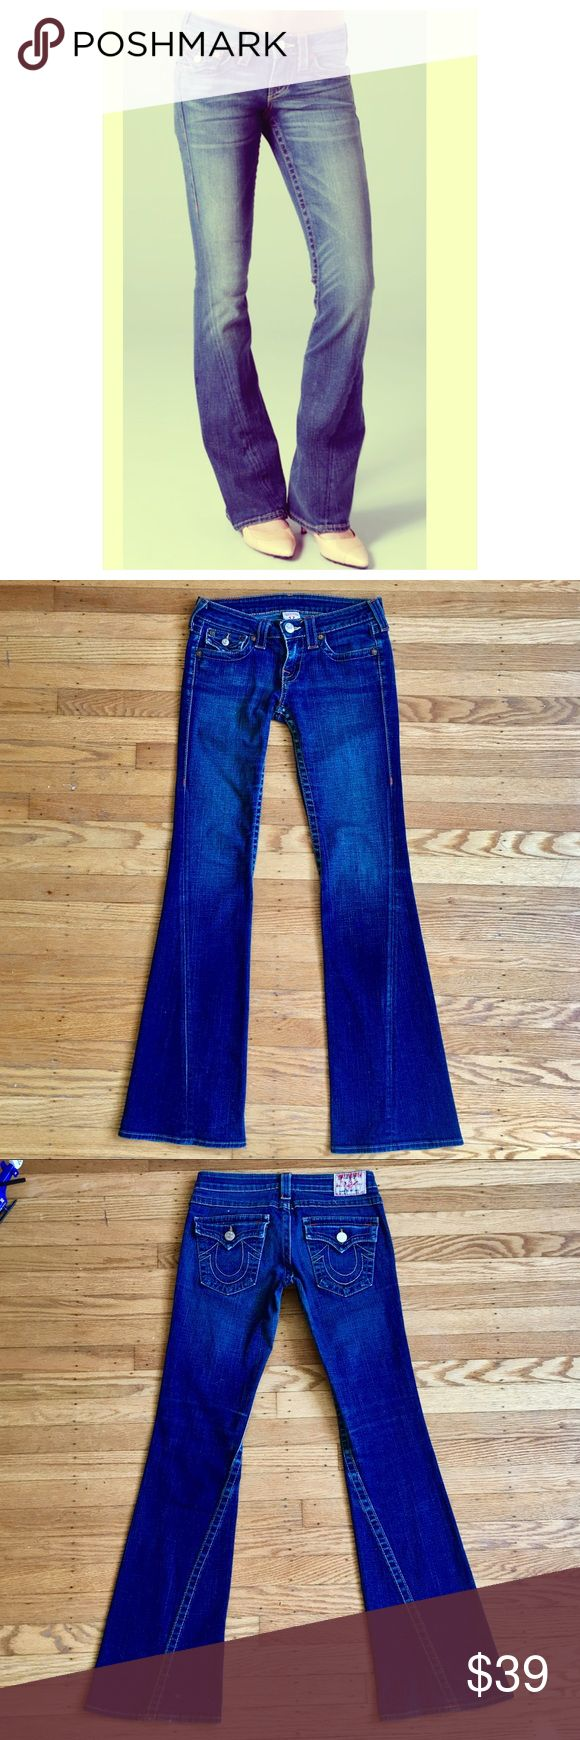 """True Religion Size 27 Joey Flare Preowned. Still FAB! Please see photo of Small Hole on Back of pant leg. It's minor but worth mentioning. Size 27. True Religion Joey Flare in Medium Wash. inseam 33"""" Rise 7"""" waist 14"""" one way leg opening 9.5"""" one way. Thank You!Keep up with this season's trend by adding these Joey flare jeans for women to your closet. With flap button closure pockets and a low rise cut, these flare jeans give retro chic a whole new meaning. 92% cotton, 6% elastomultiester…"""